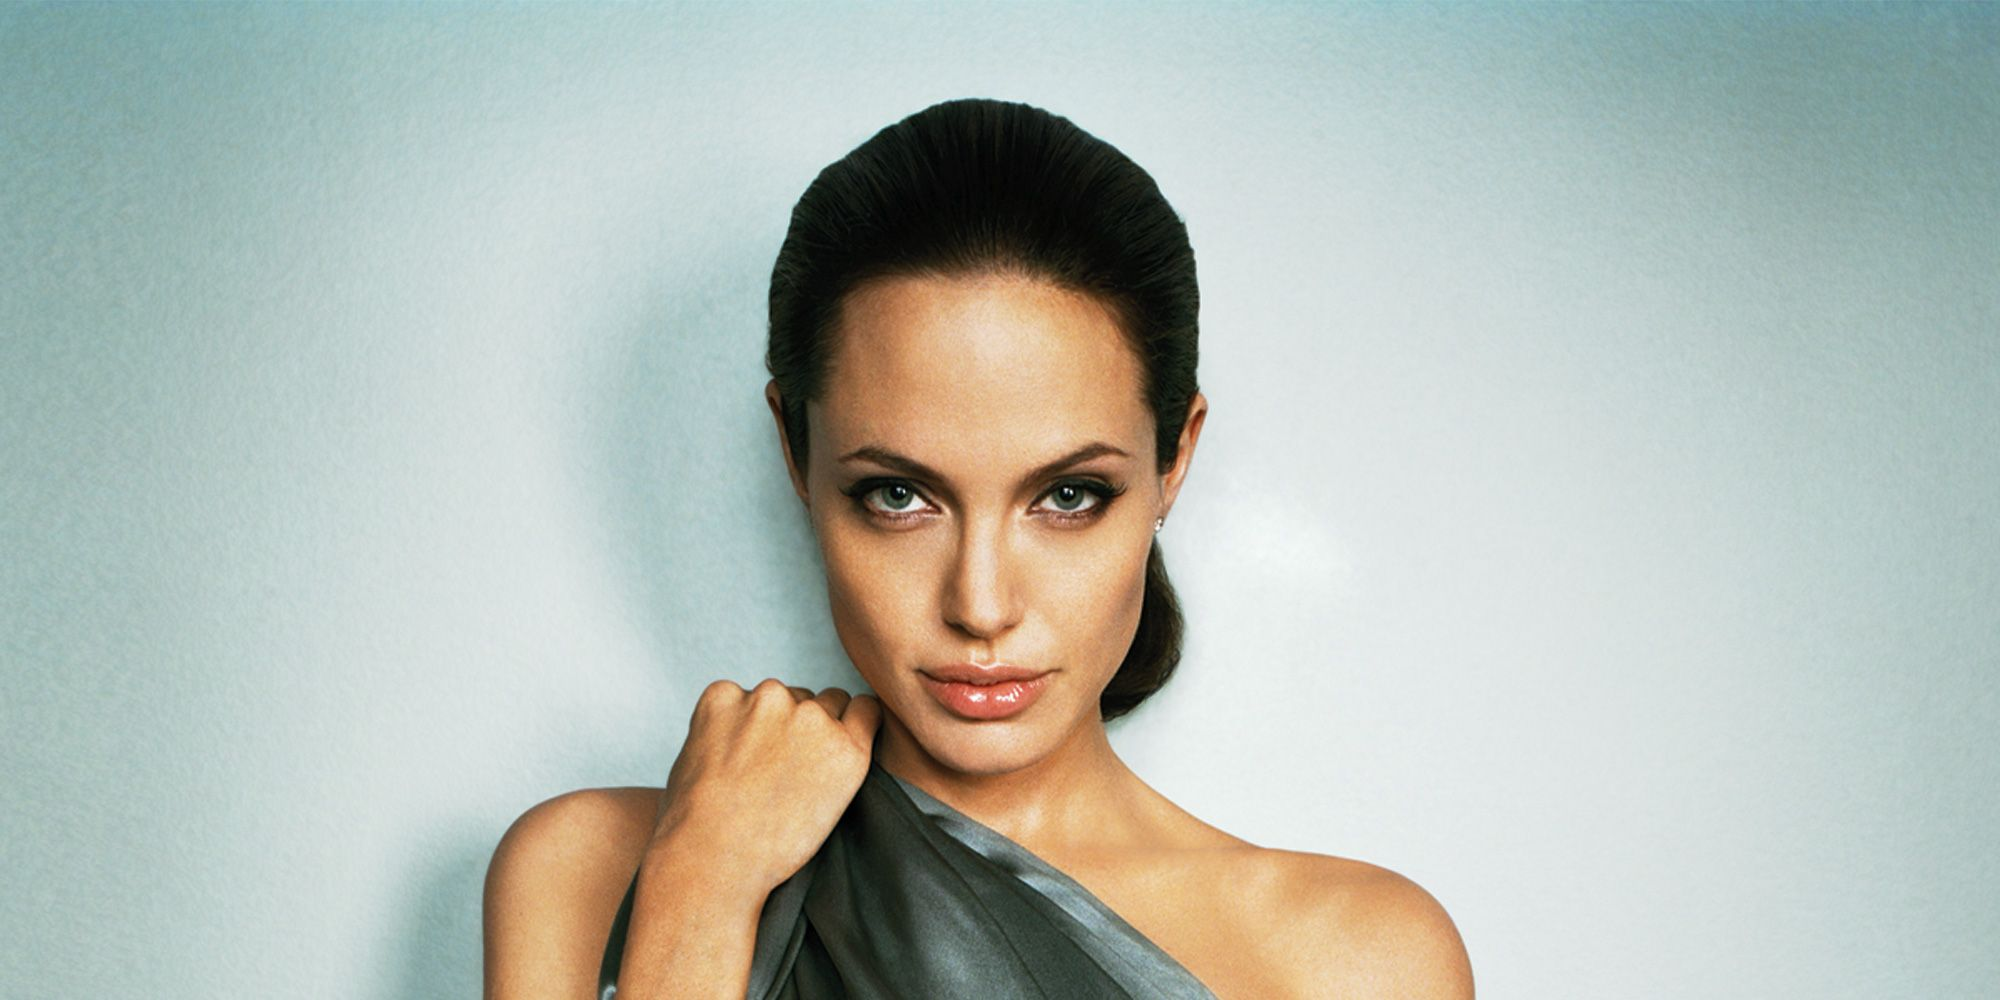 Watch Angelina jolie esquire magazine nov 2004 by james white hq photo shoot video